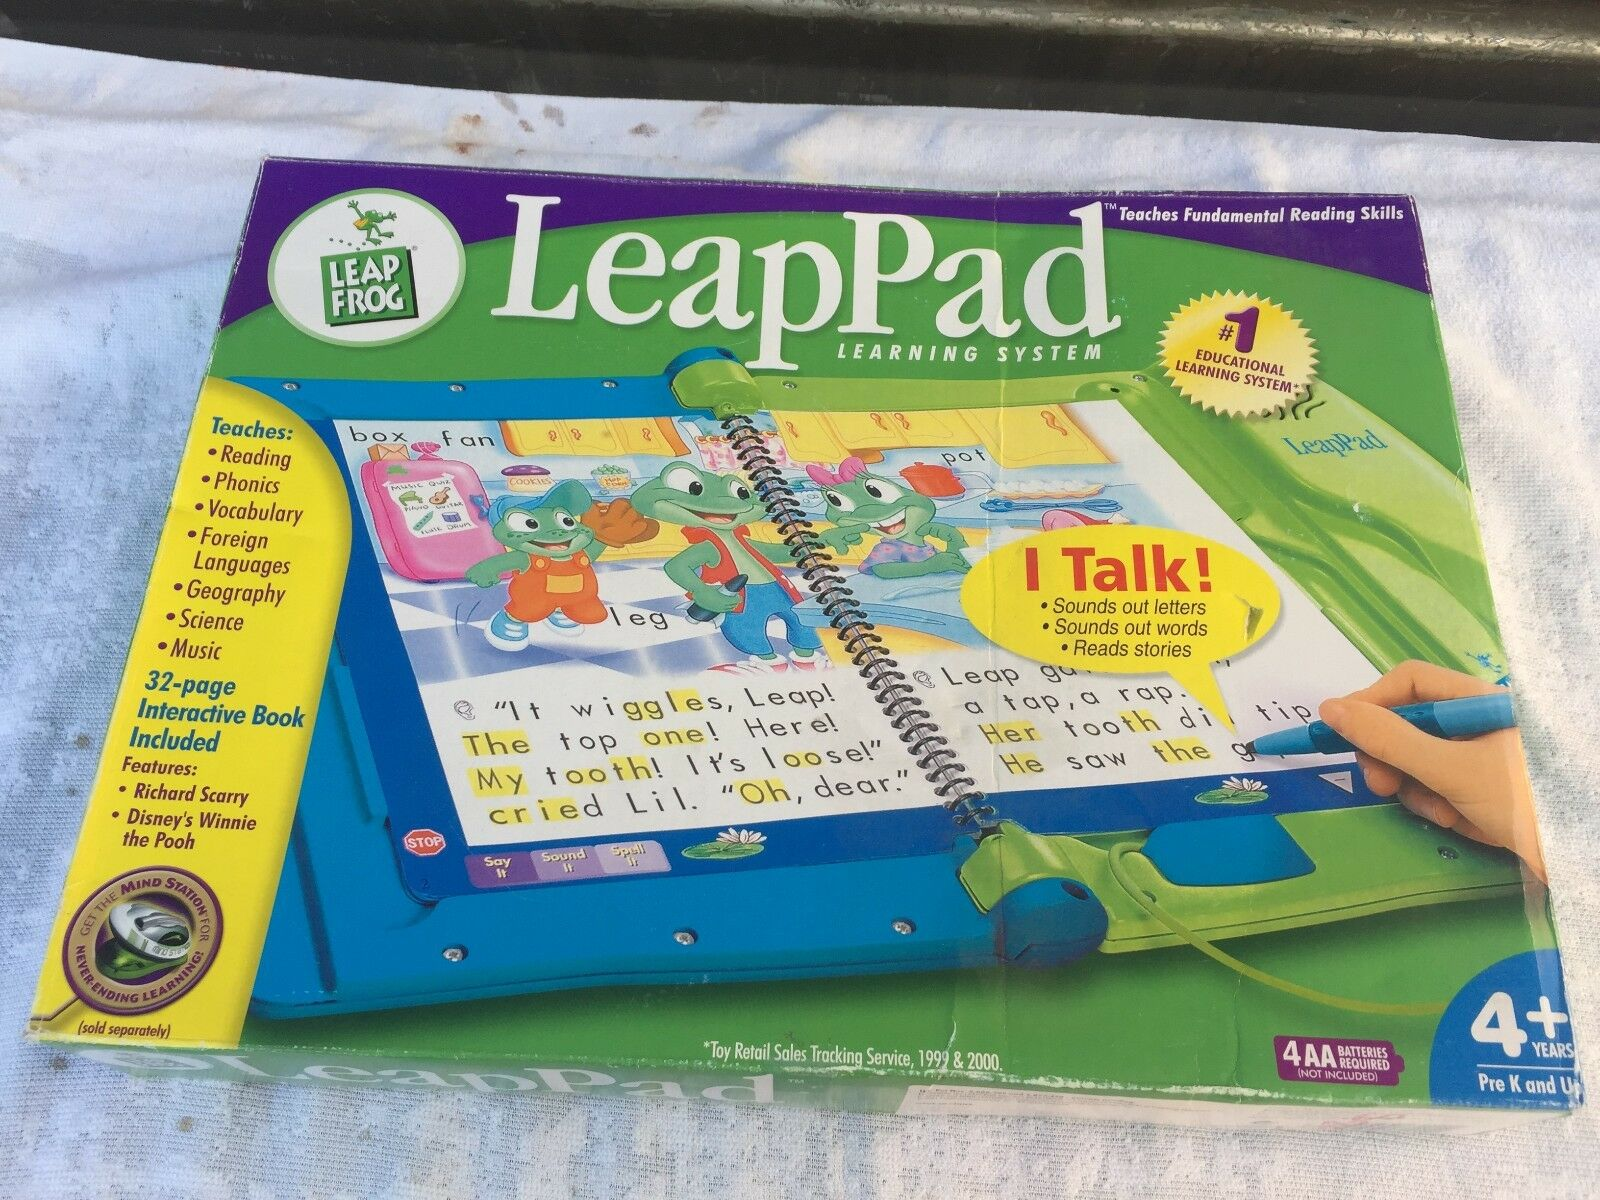 Leap Pad Learning System by Leap Frog Opened New